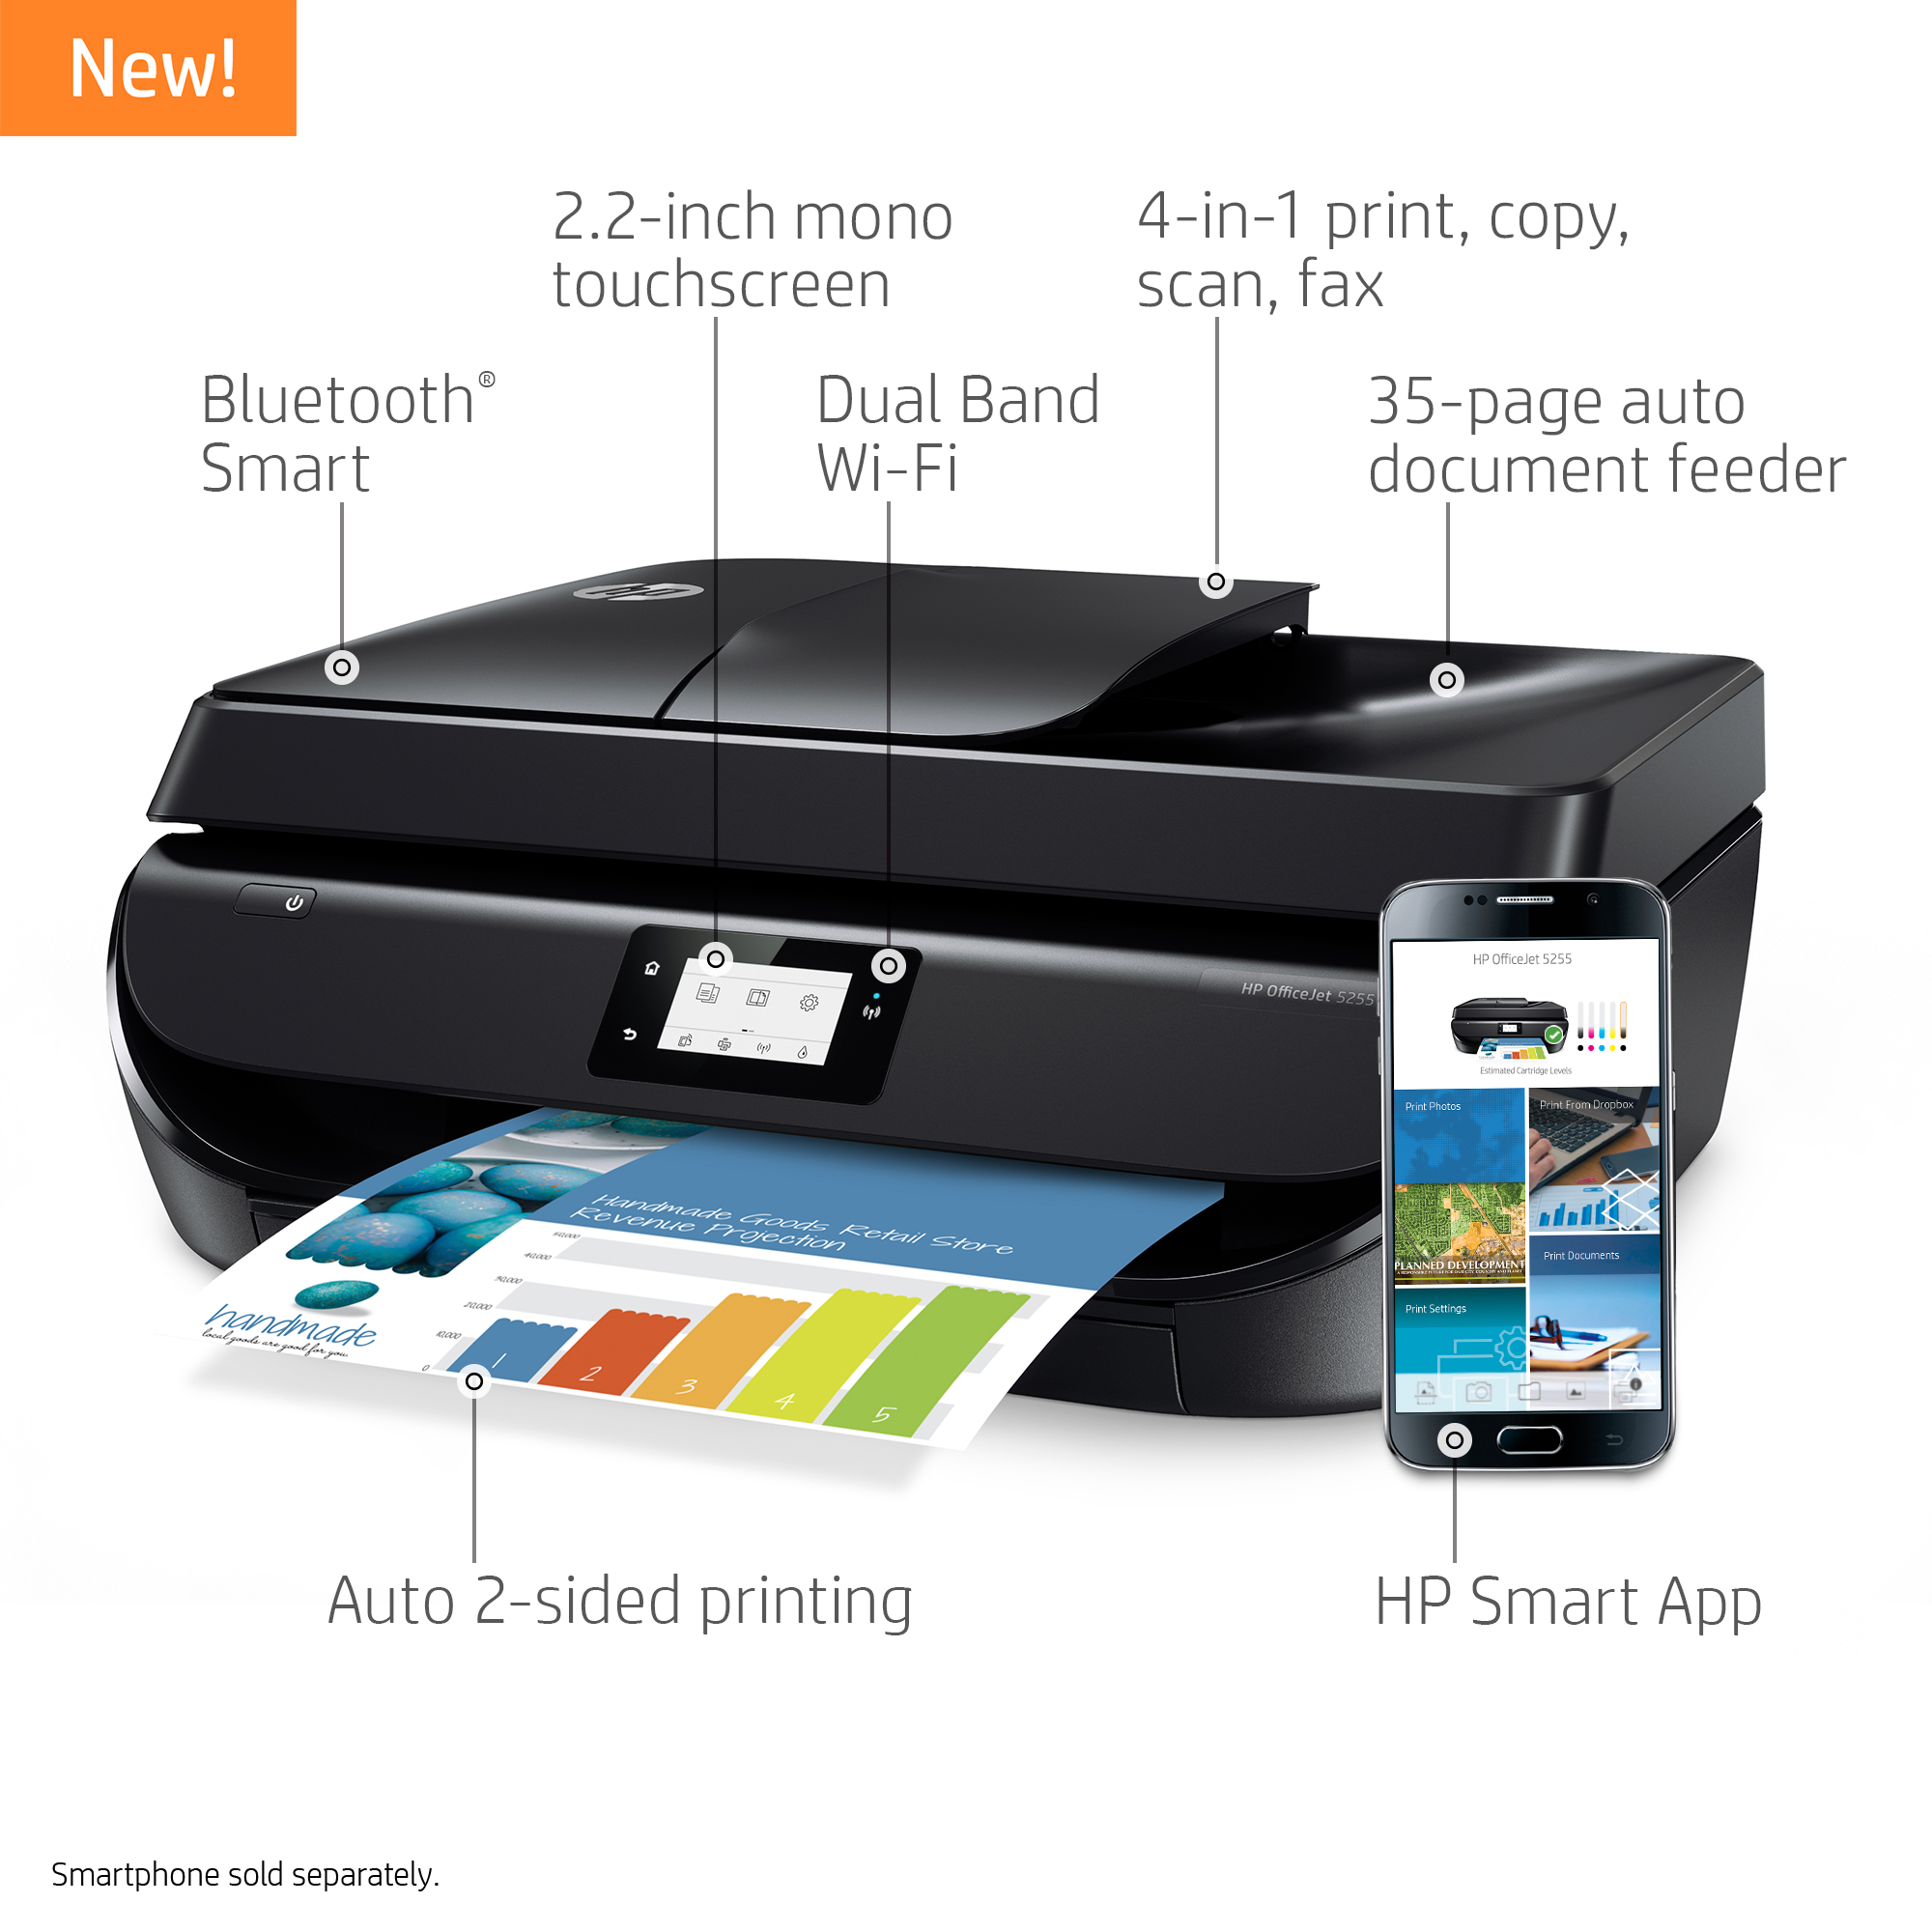 HP Officejet 5255 All-in-One Wireless Color Printer, M2U75A Item # 7600702